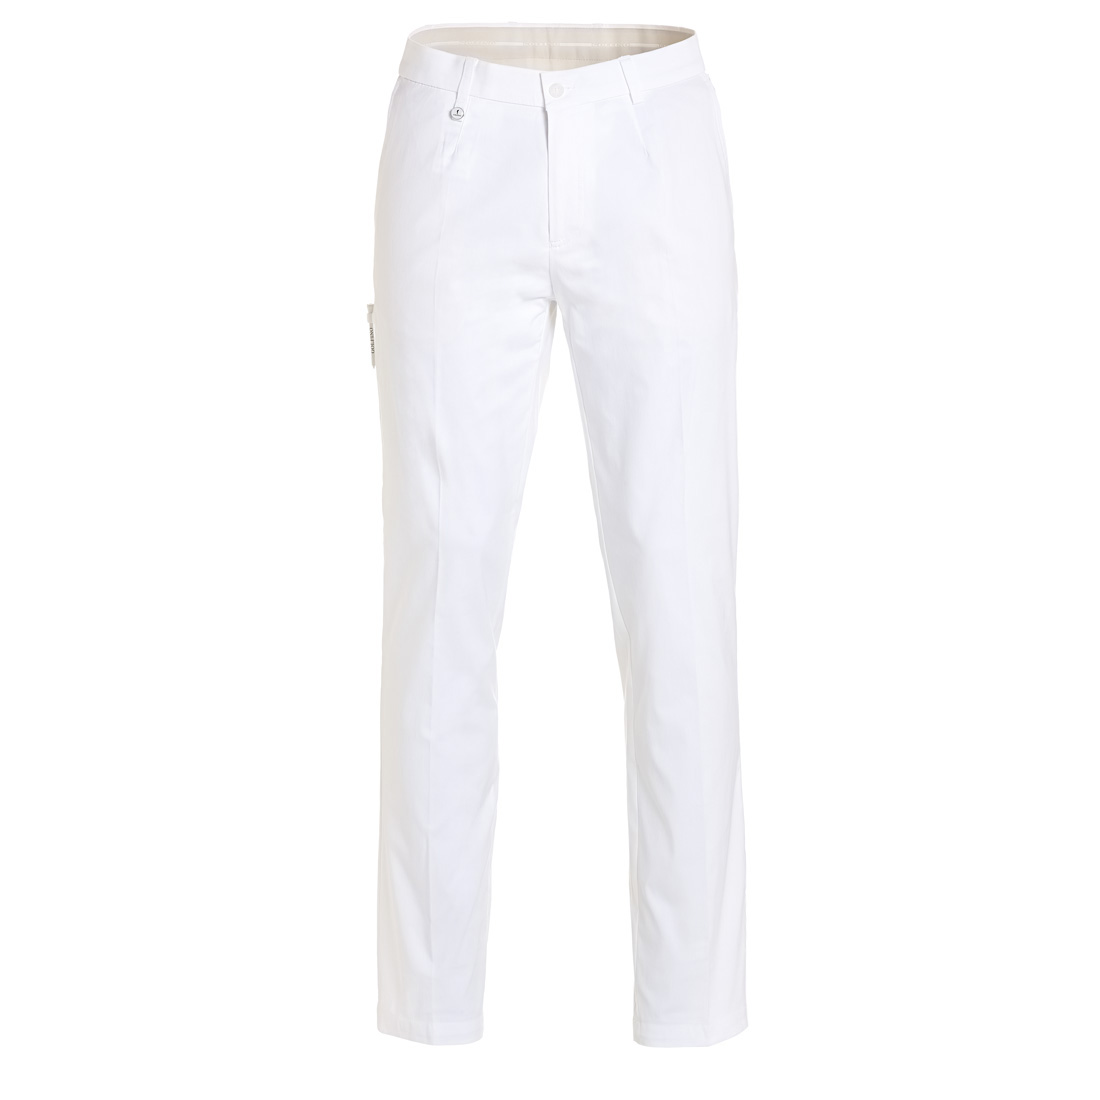 Men's golf pants with sun protection function and stretch component